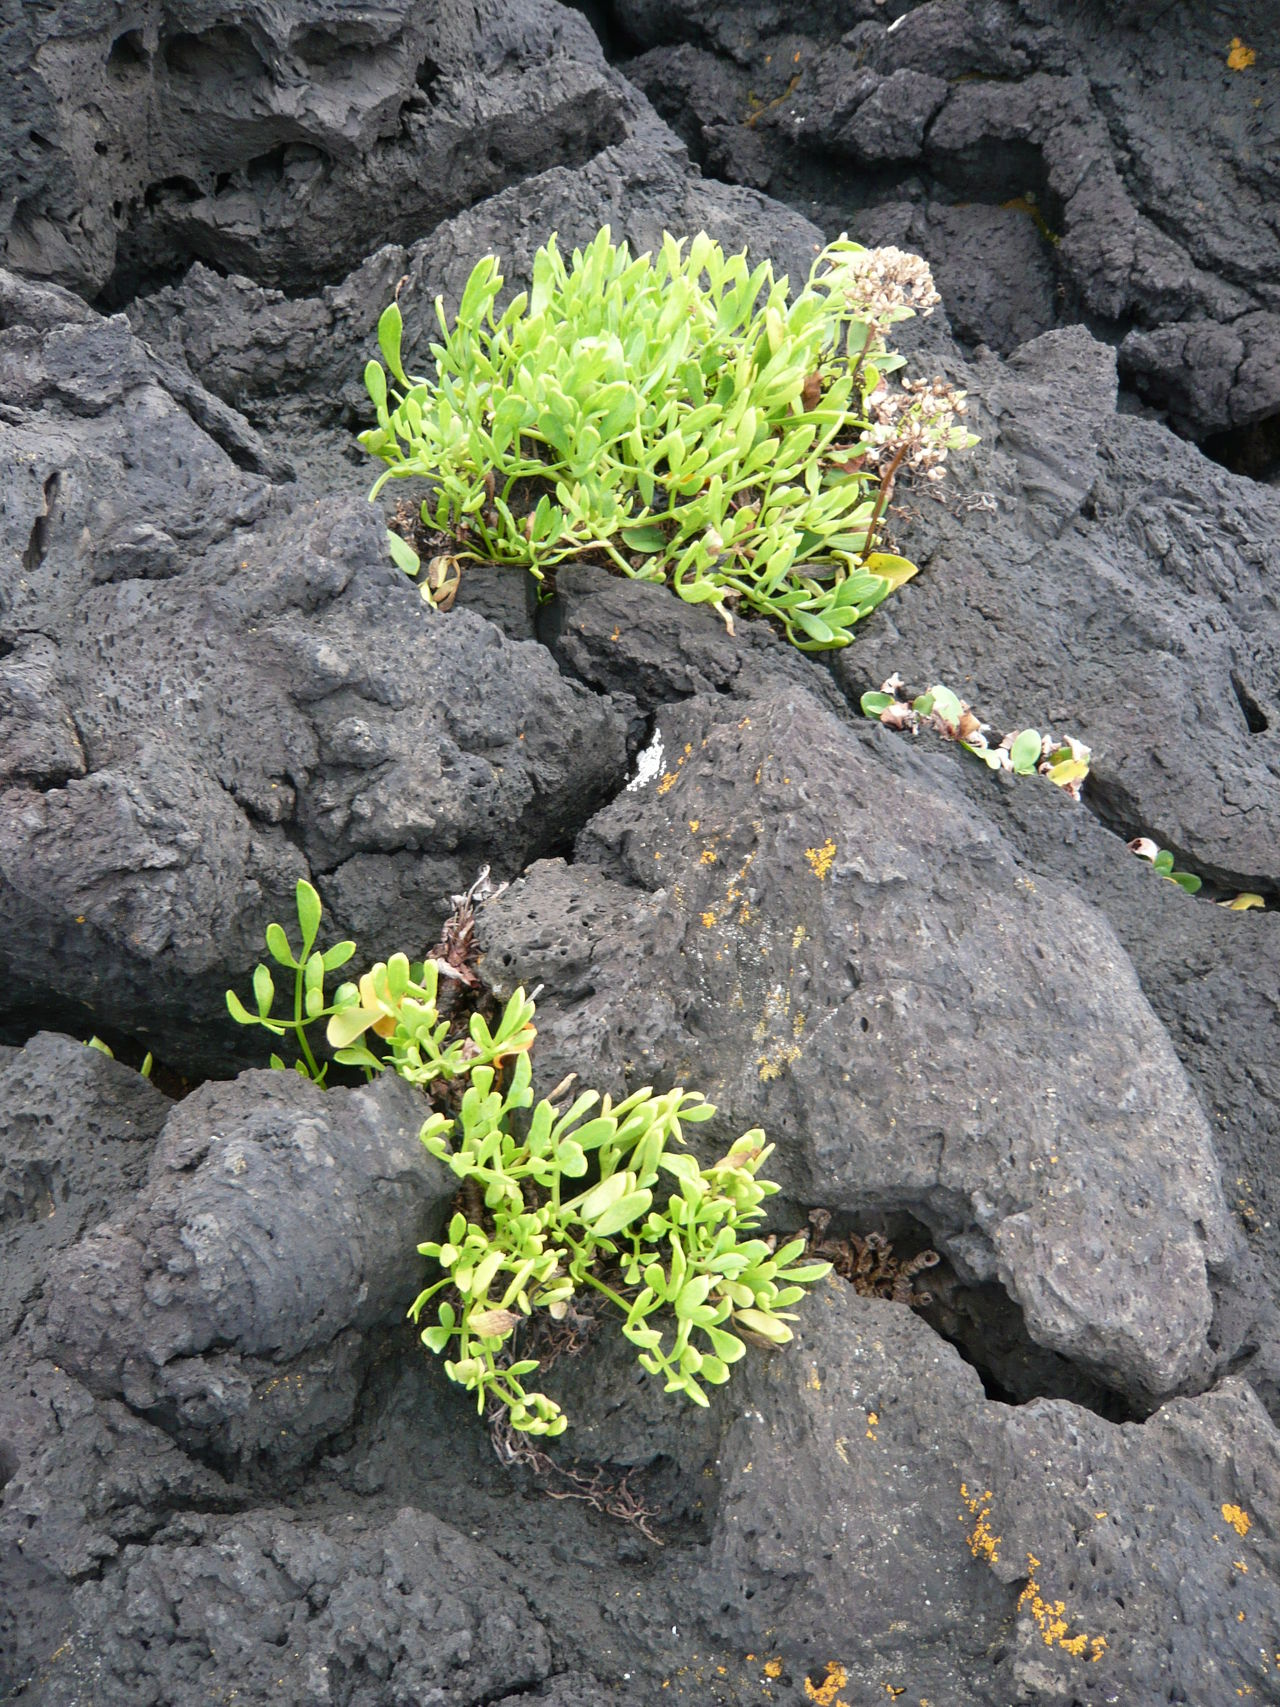 Green on Volcanic Ground Azores Beauty In Nature Close-up Day Flower Flower Head Freshness Green Color Growth Leaf Nature No People Outdoors Plant Social Issues Sunlight Vulcanic Landscape Vulcanicisland Wildflower